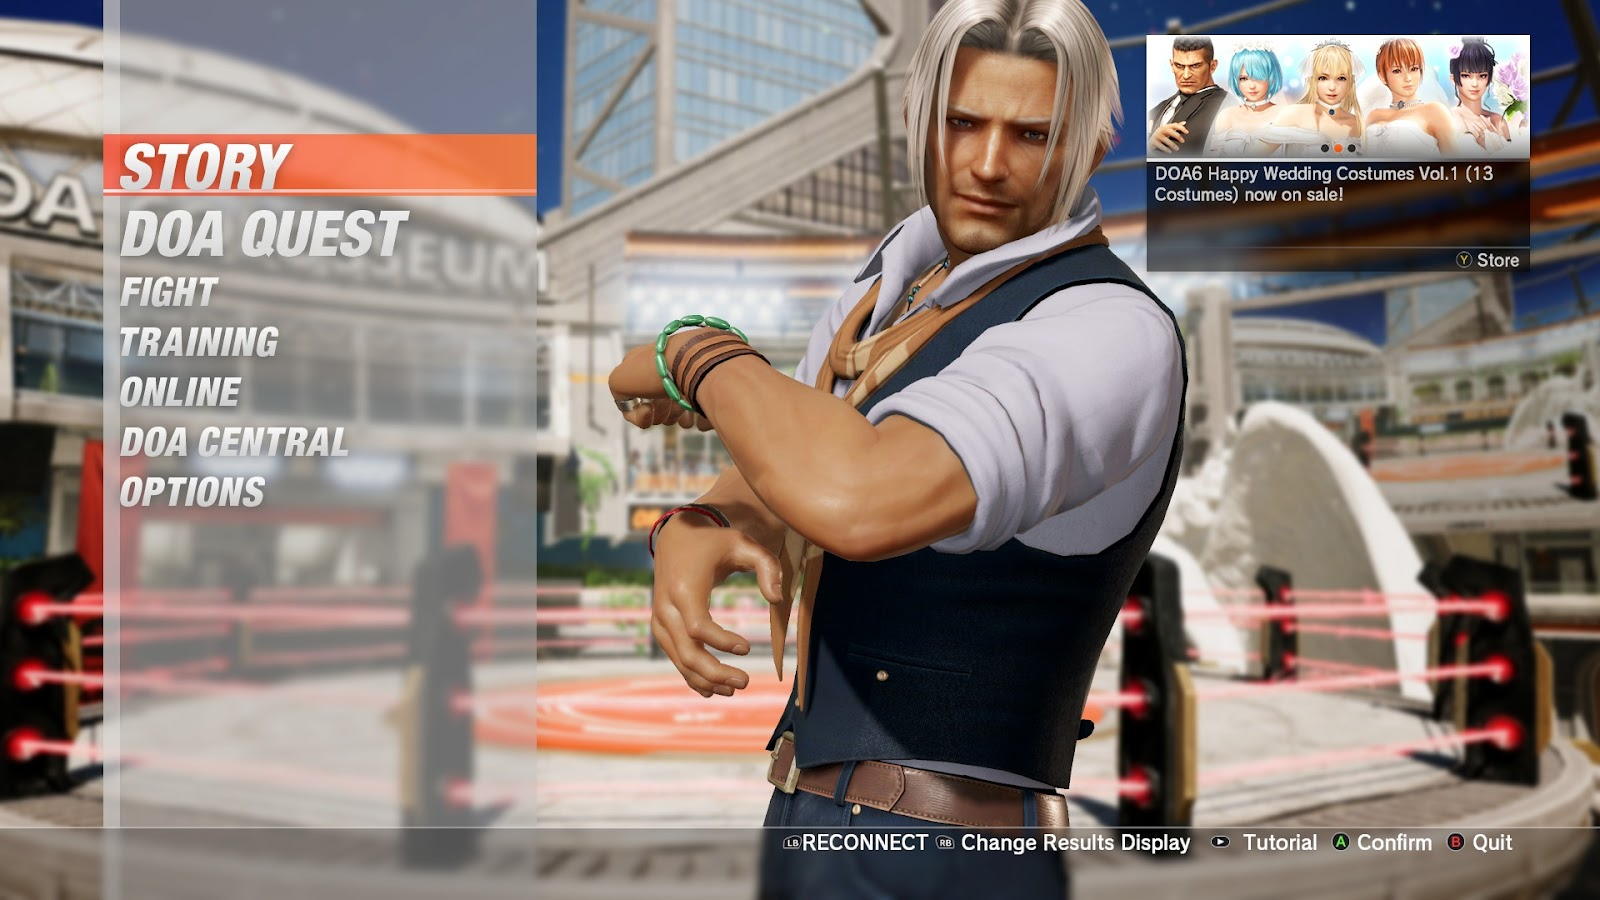 The Main menu showing a random character and the button interactions